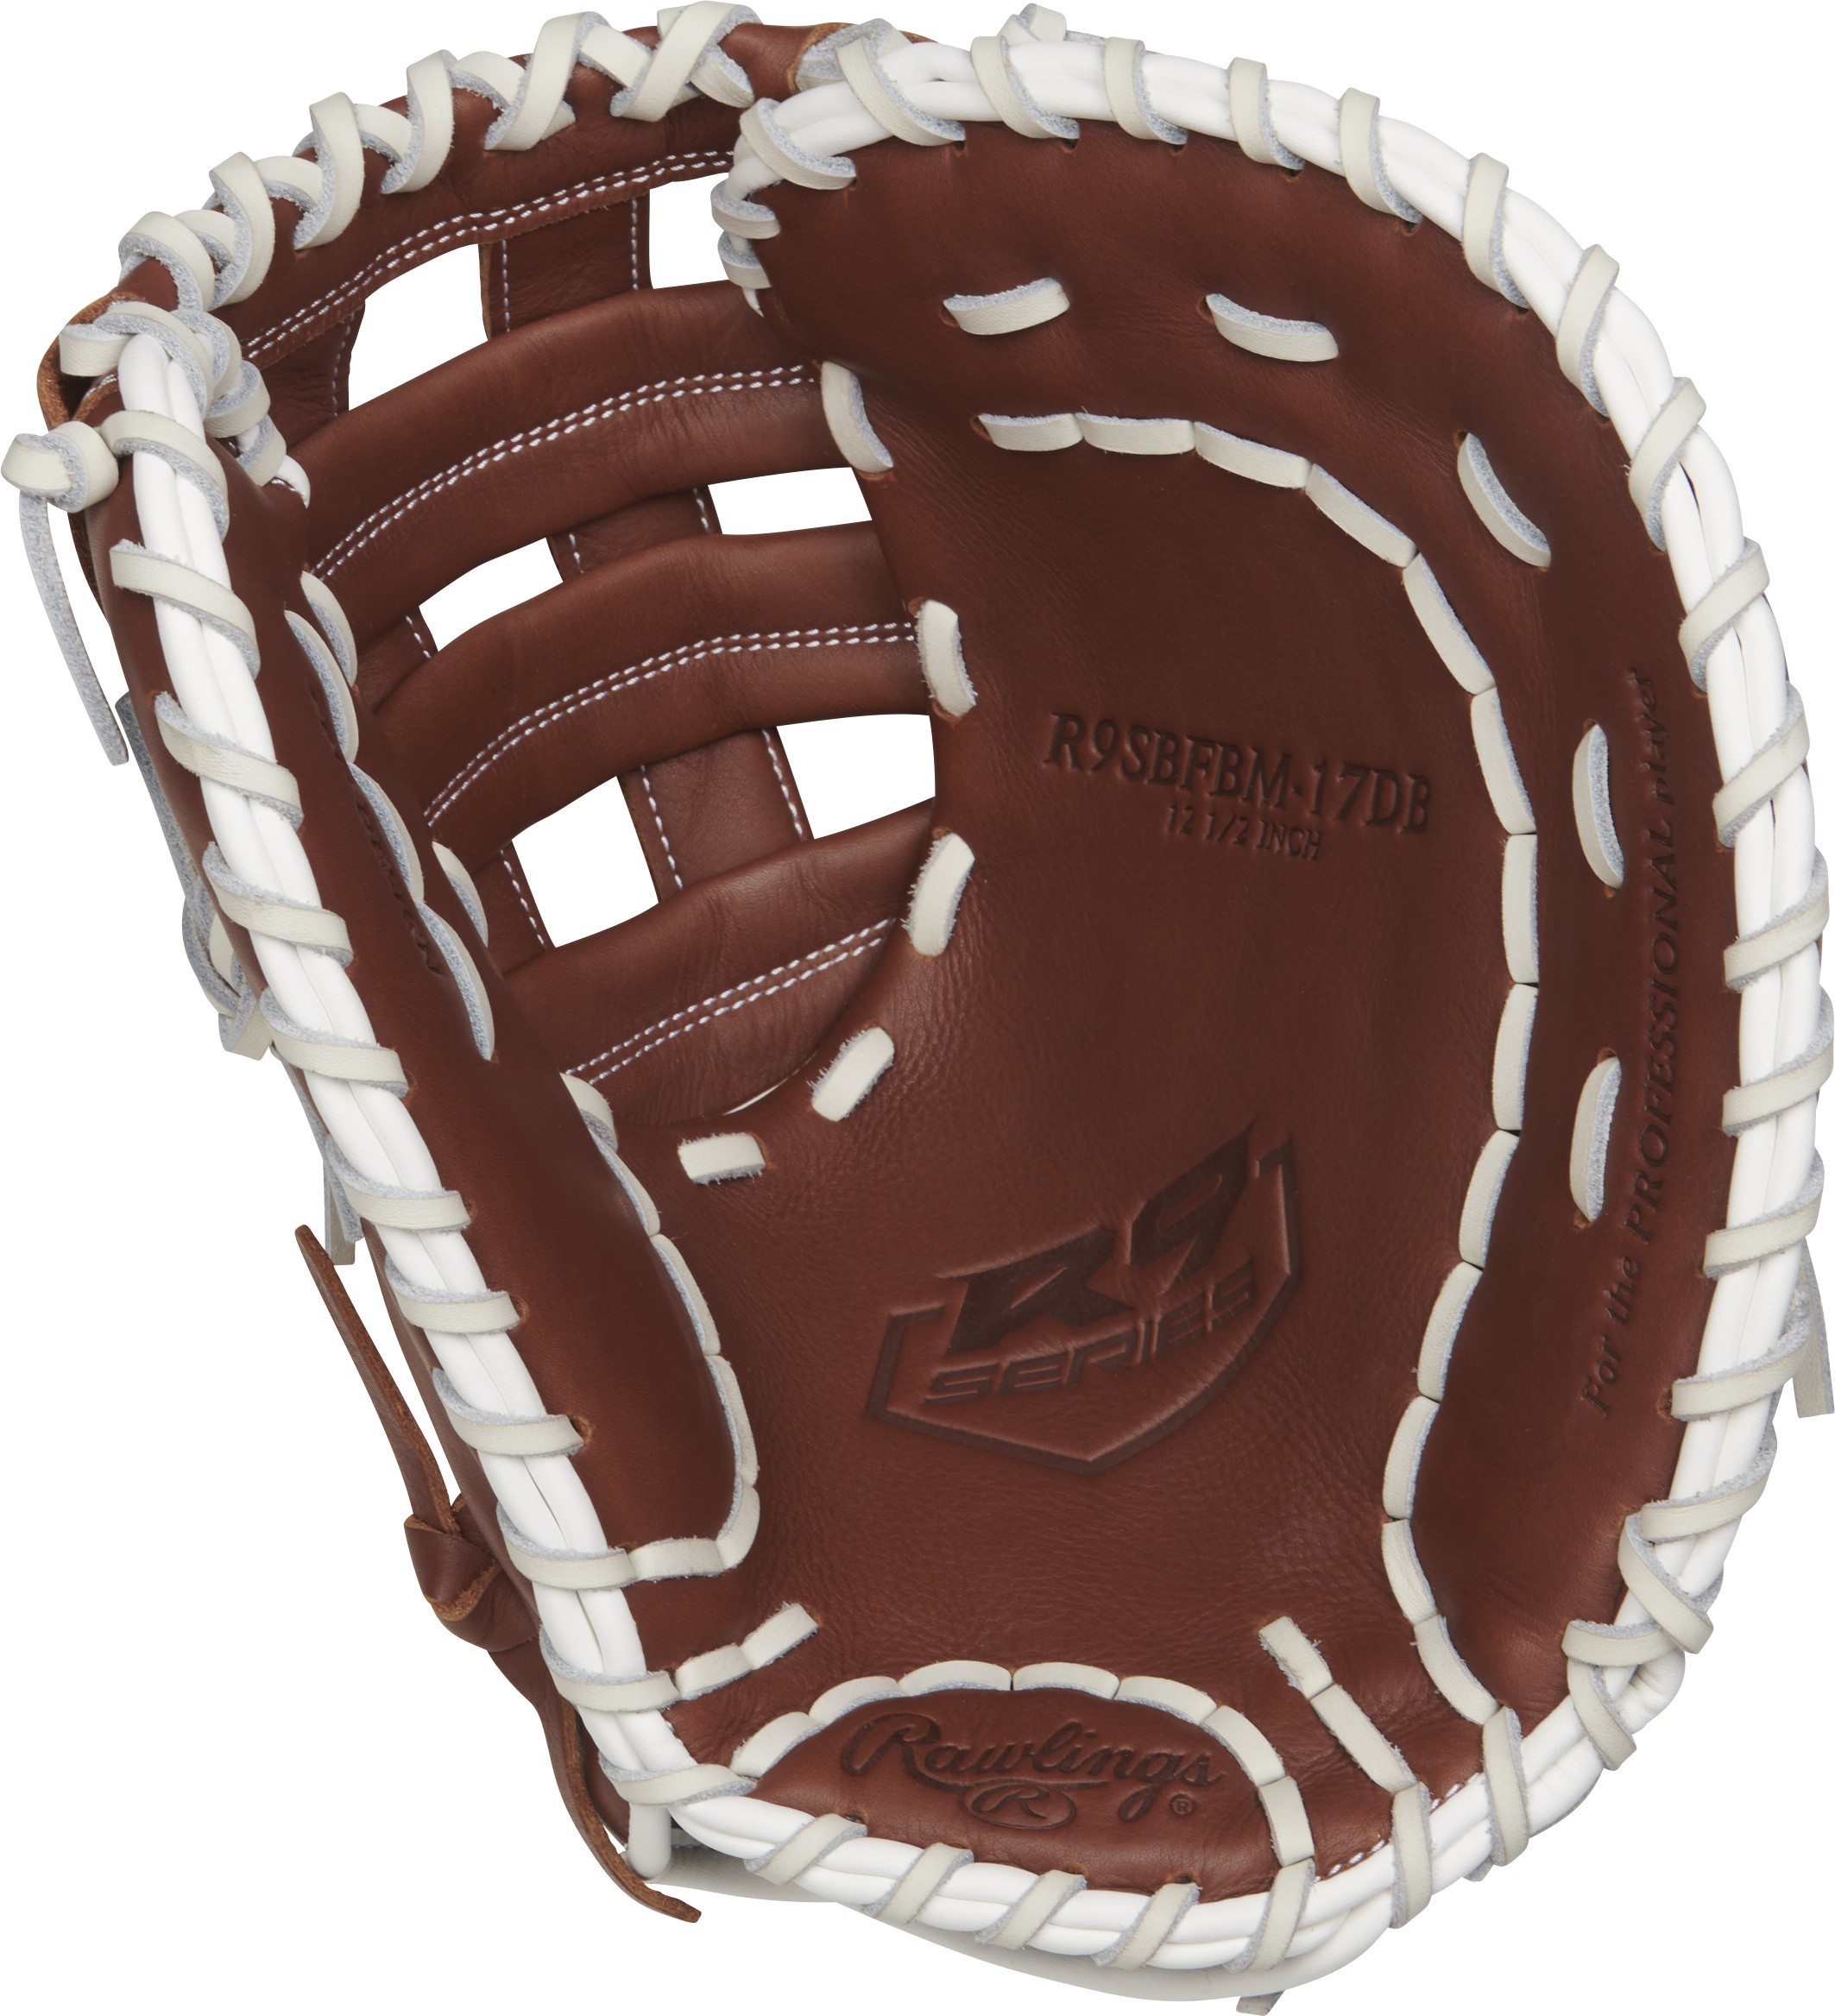 http://www.bestbatdeals.com/images/gloves/rawlings/R9SBFBM-17DB-1.jpg